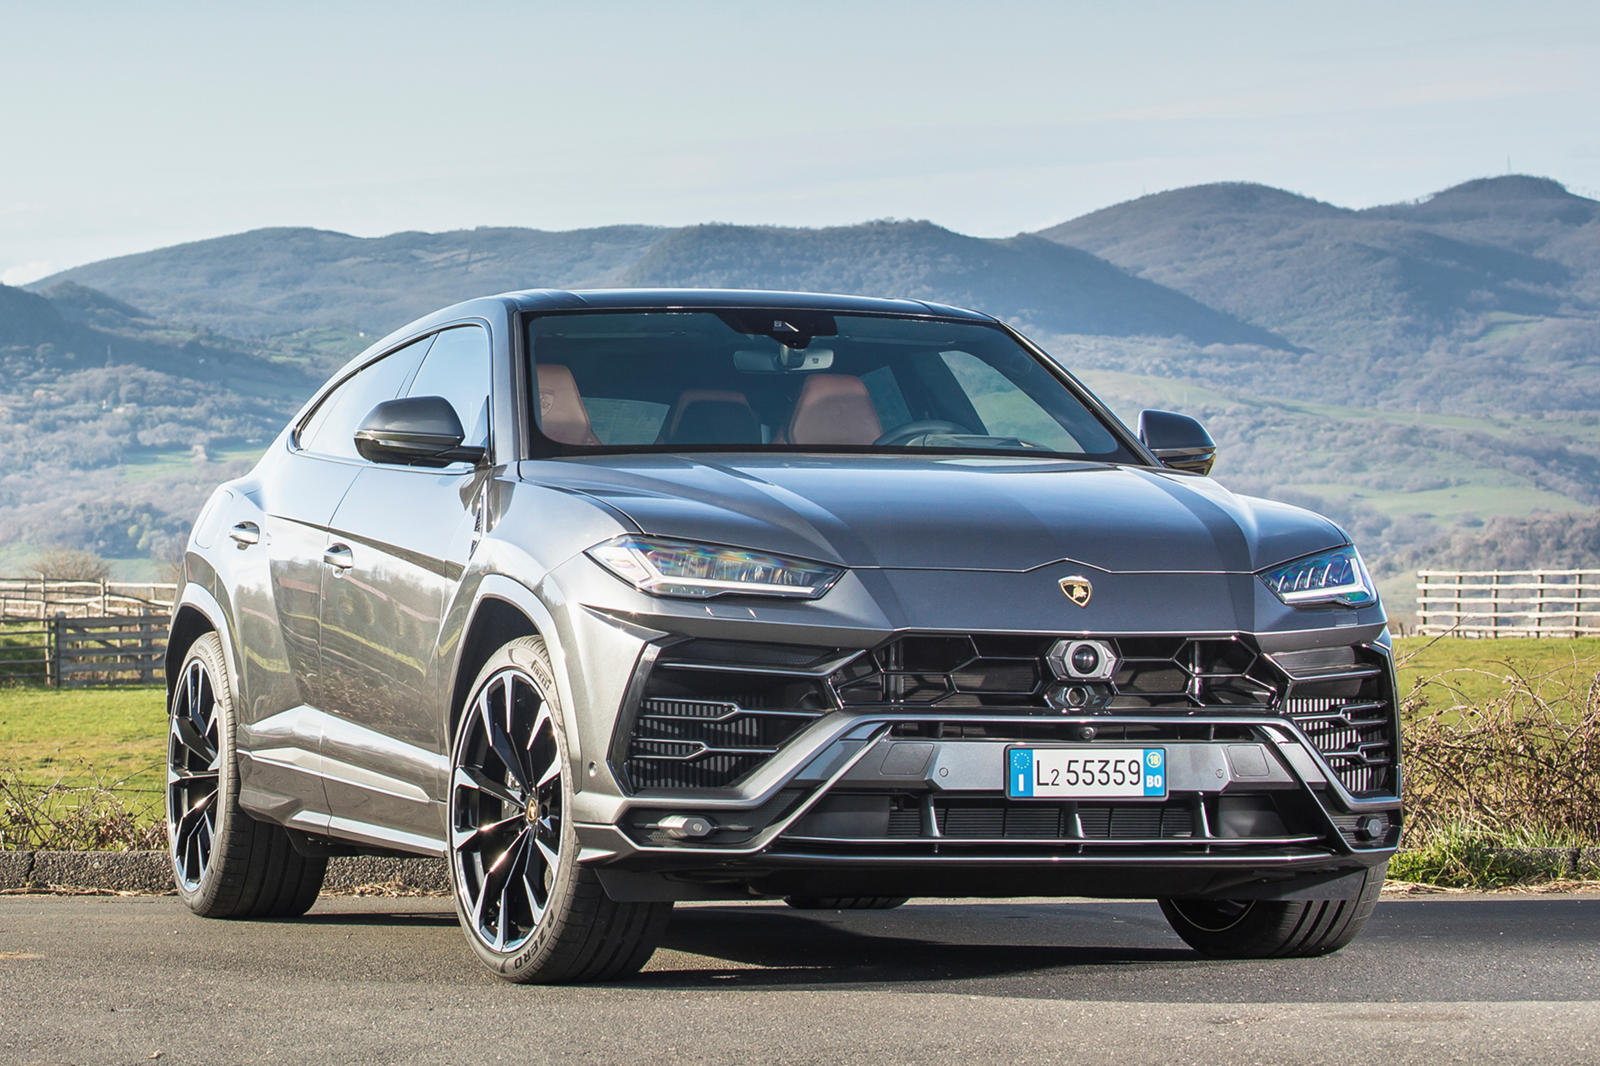 2019 Lamborghini Urus Review Review Trims Specs And Price Carbuzz